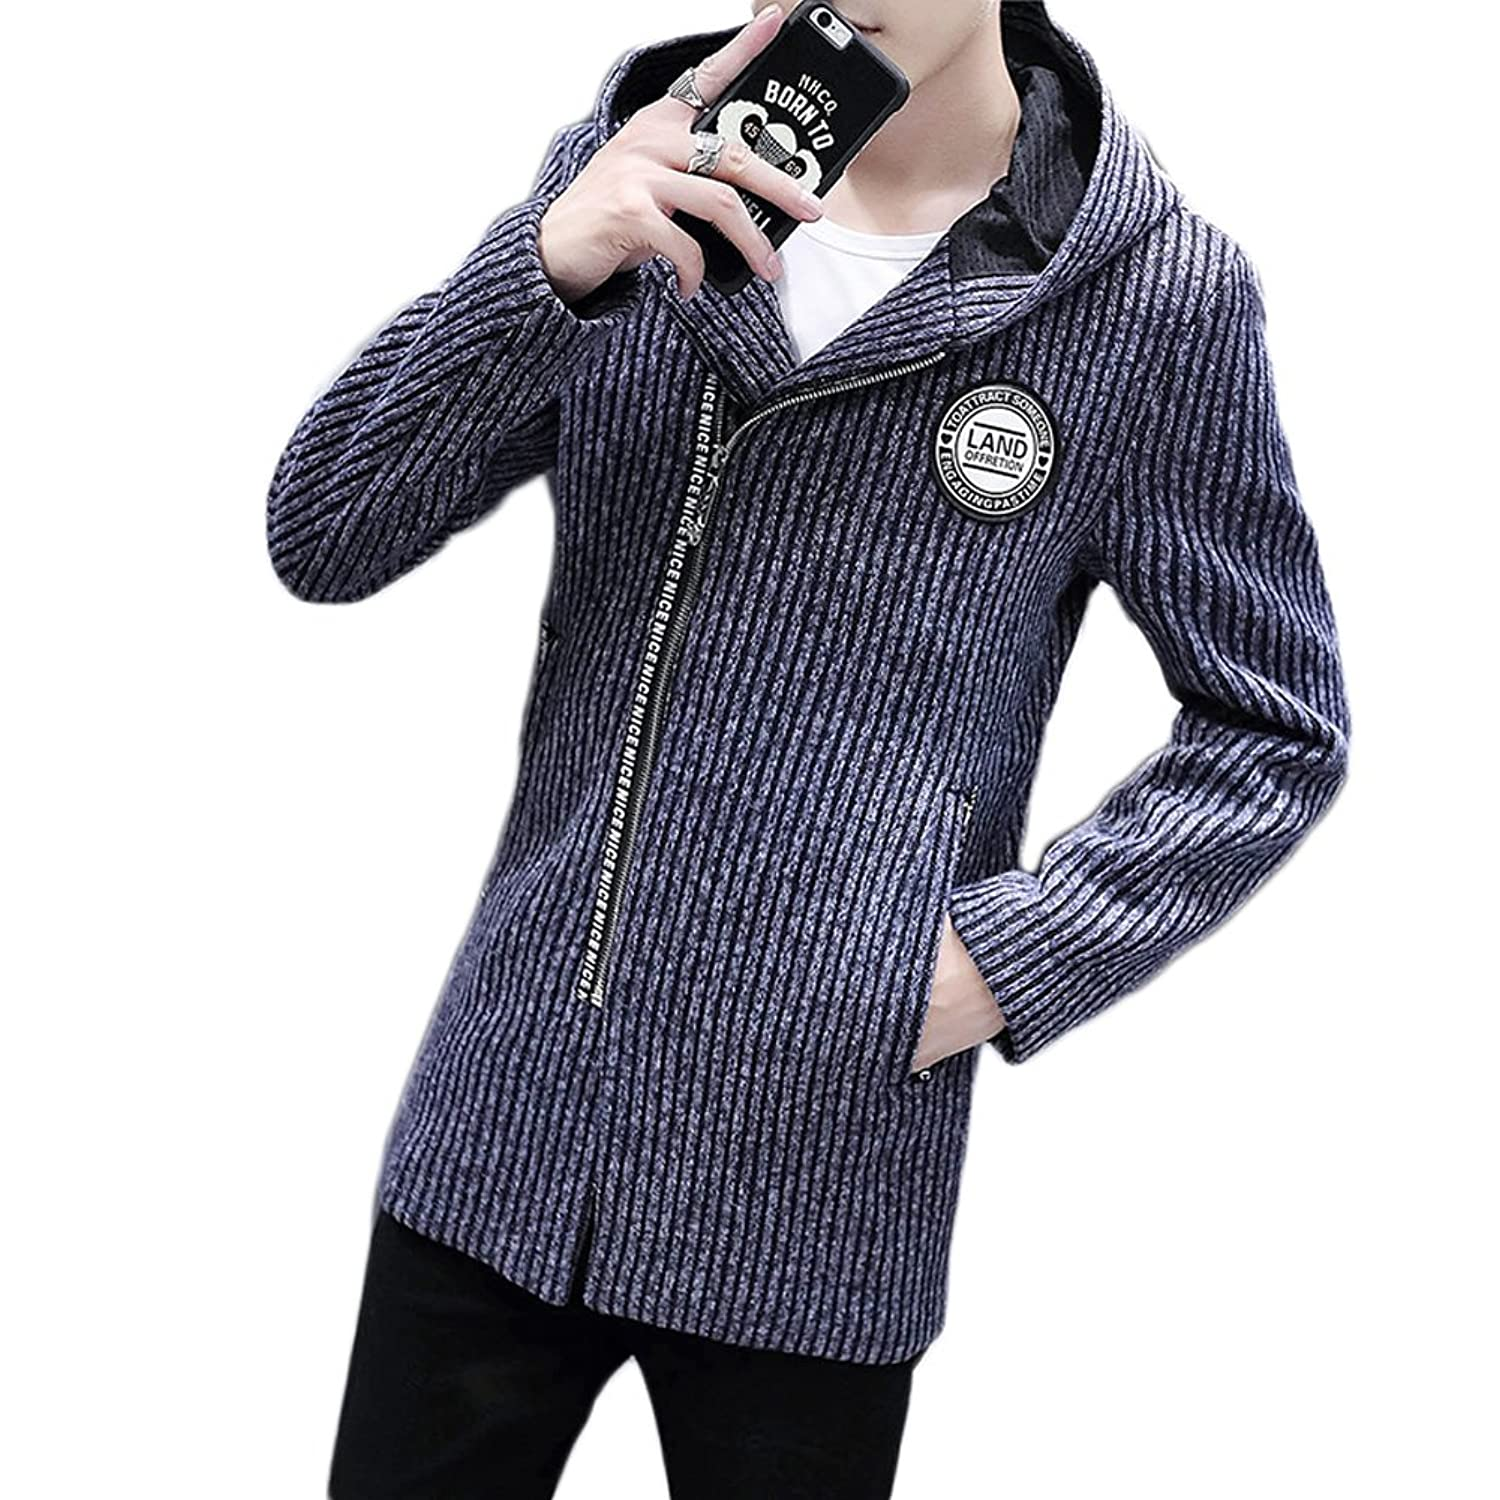 KA Beauty Autumn Winter Men's Knit Thick Sweater Coat Casual Jacket